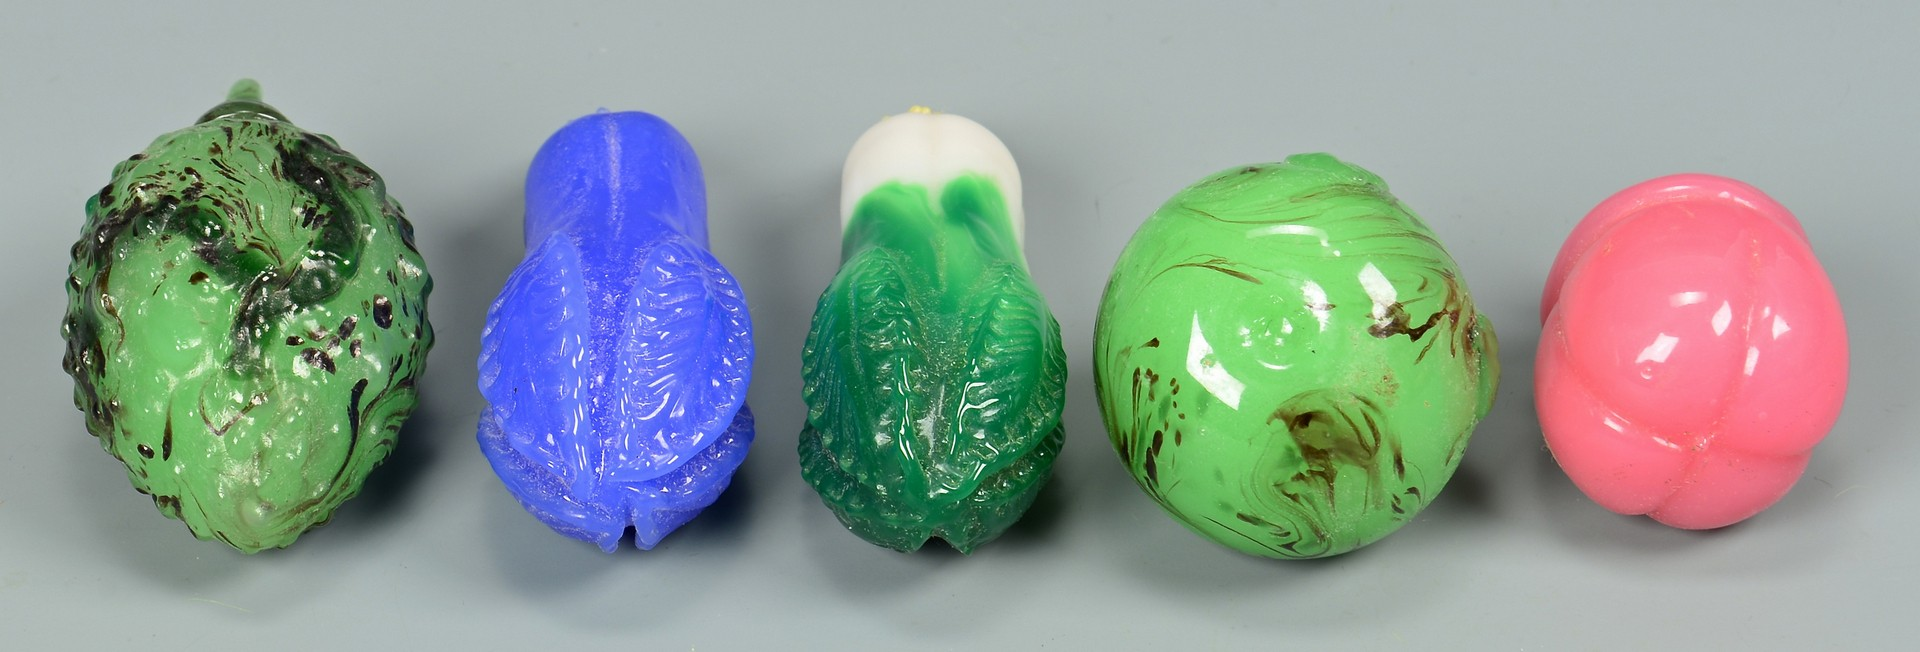 Lot 751: Peking Glass Fruit Snuff Bottles and ornaments